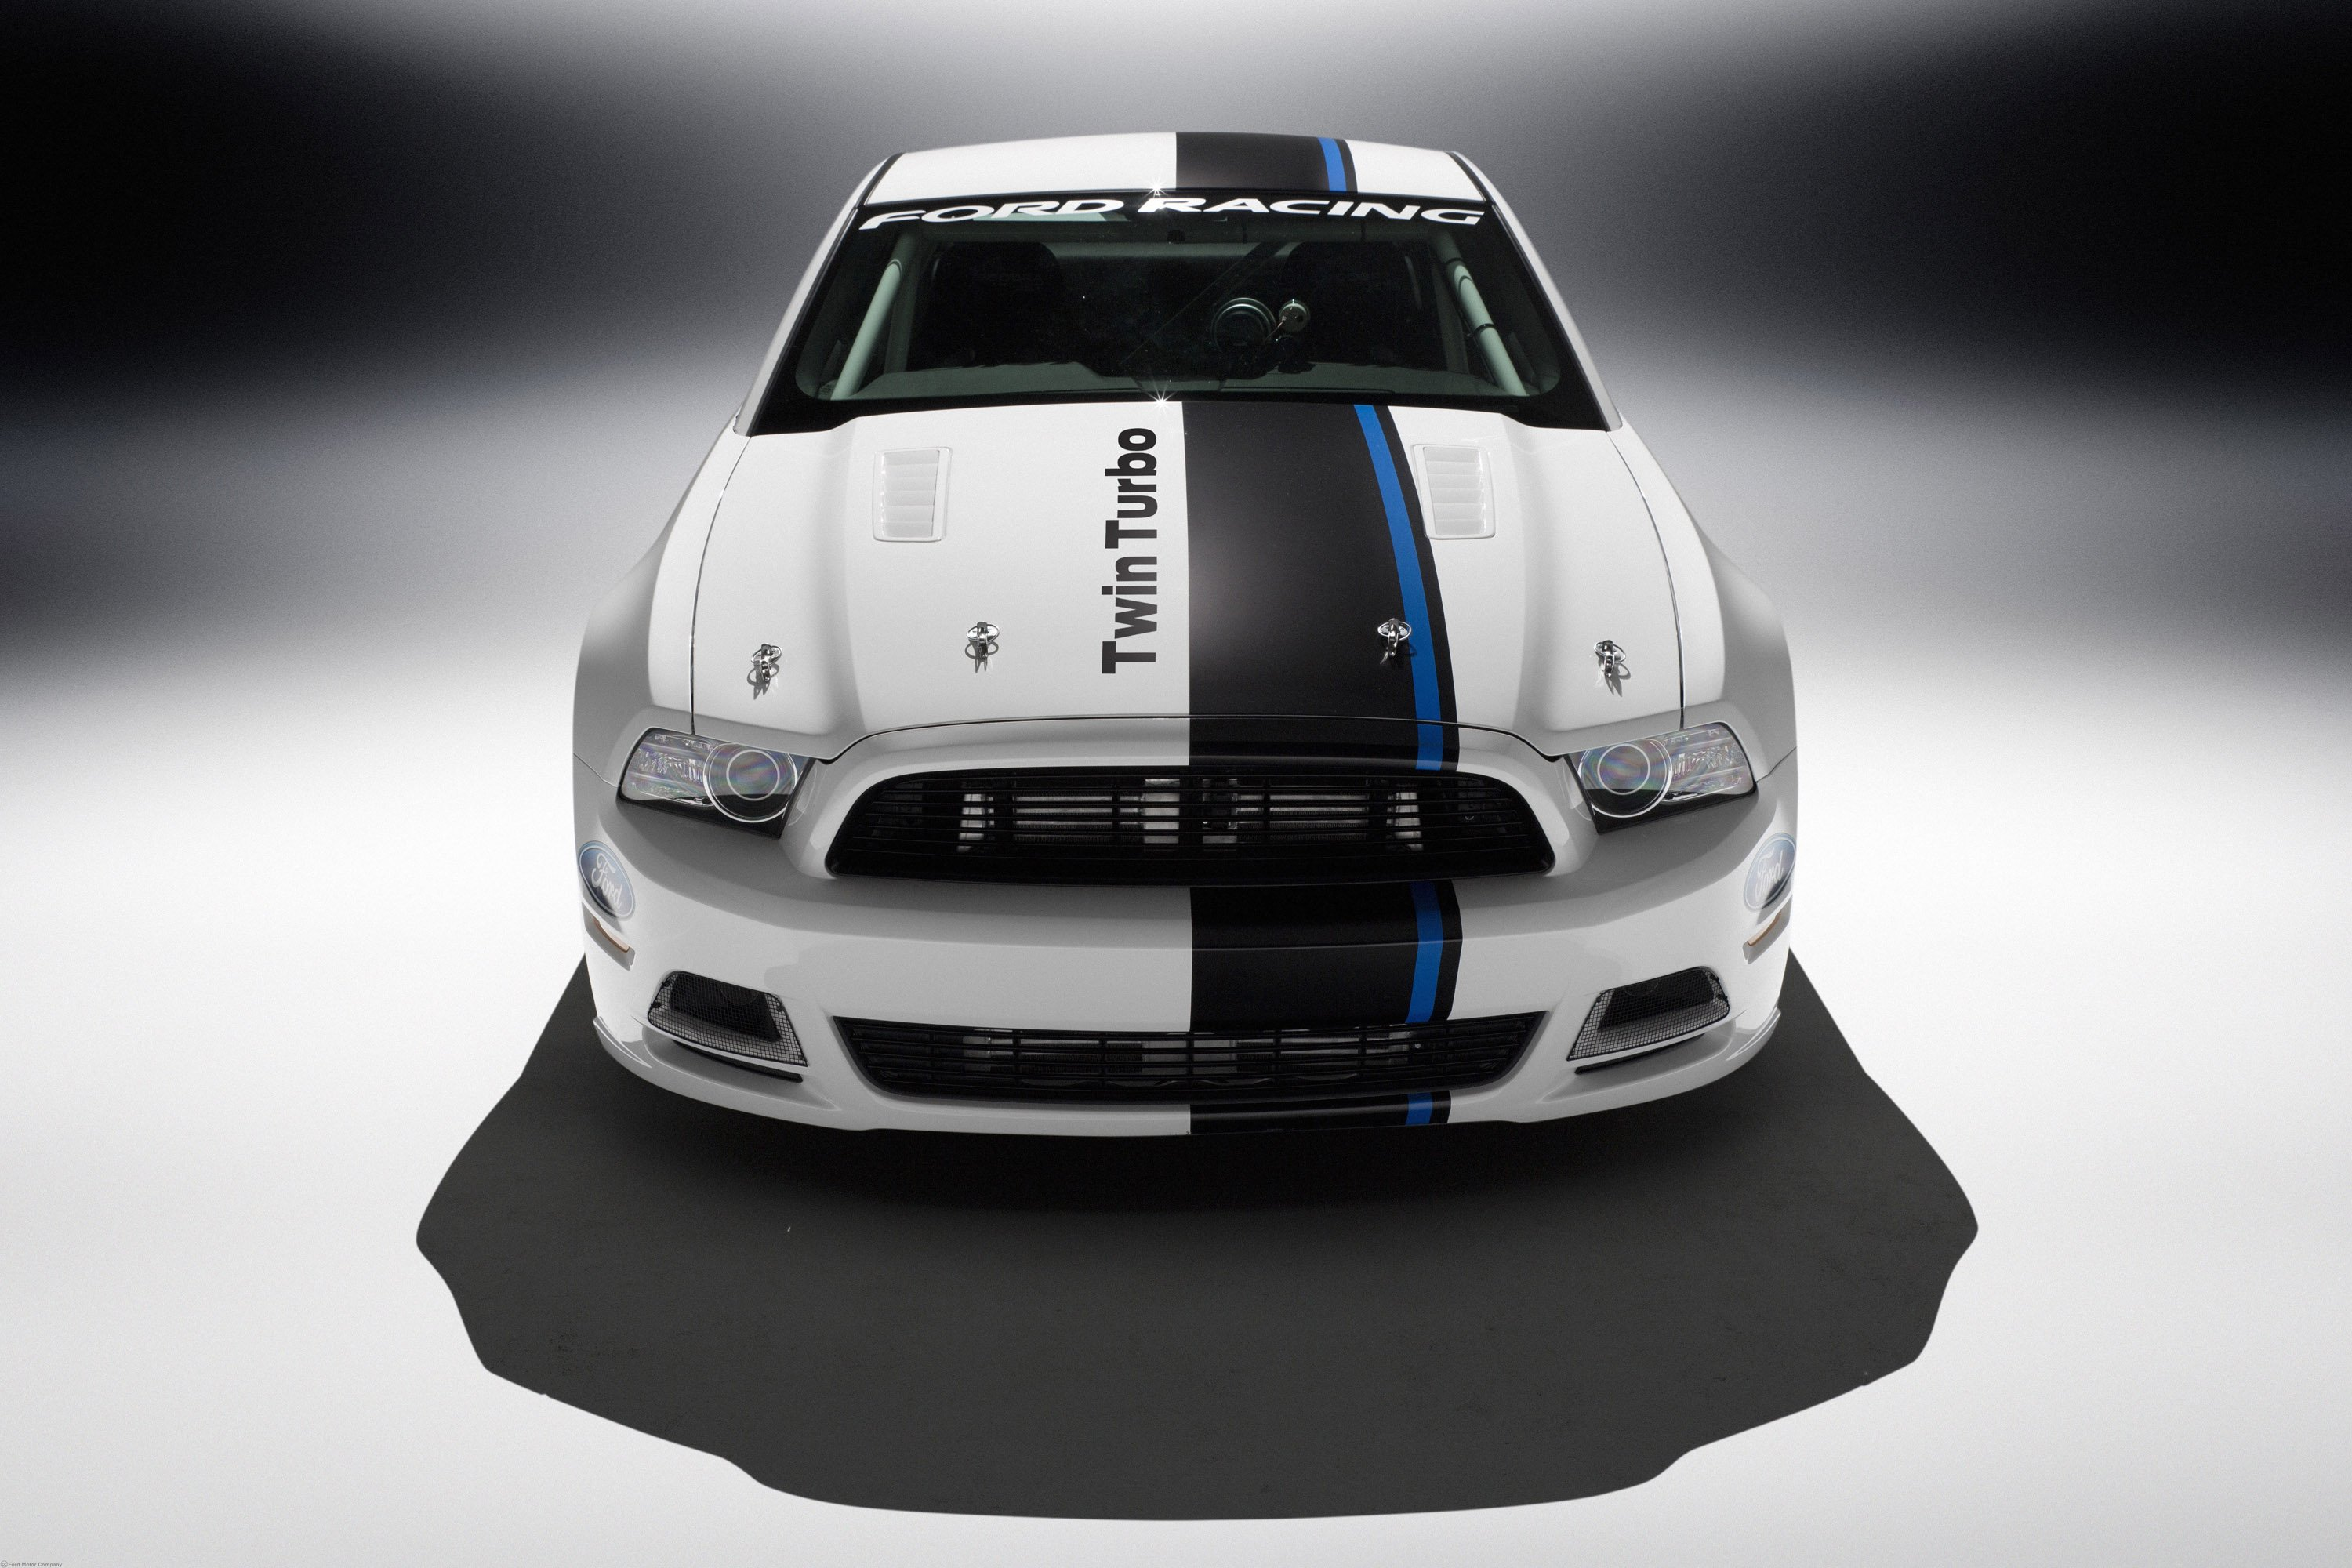 Supposedly the Next Shelby GT500 Will Humble the Hellcat's Horses